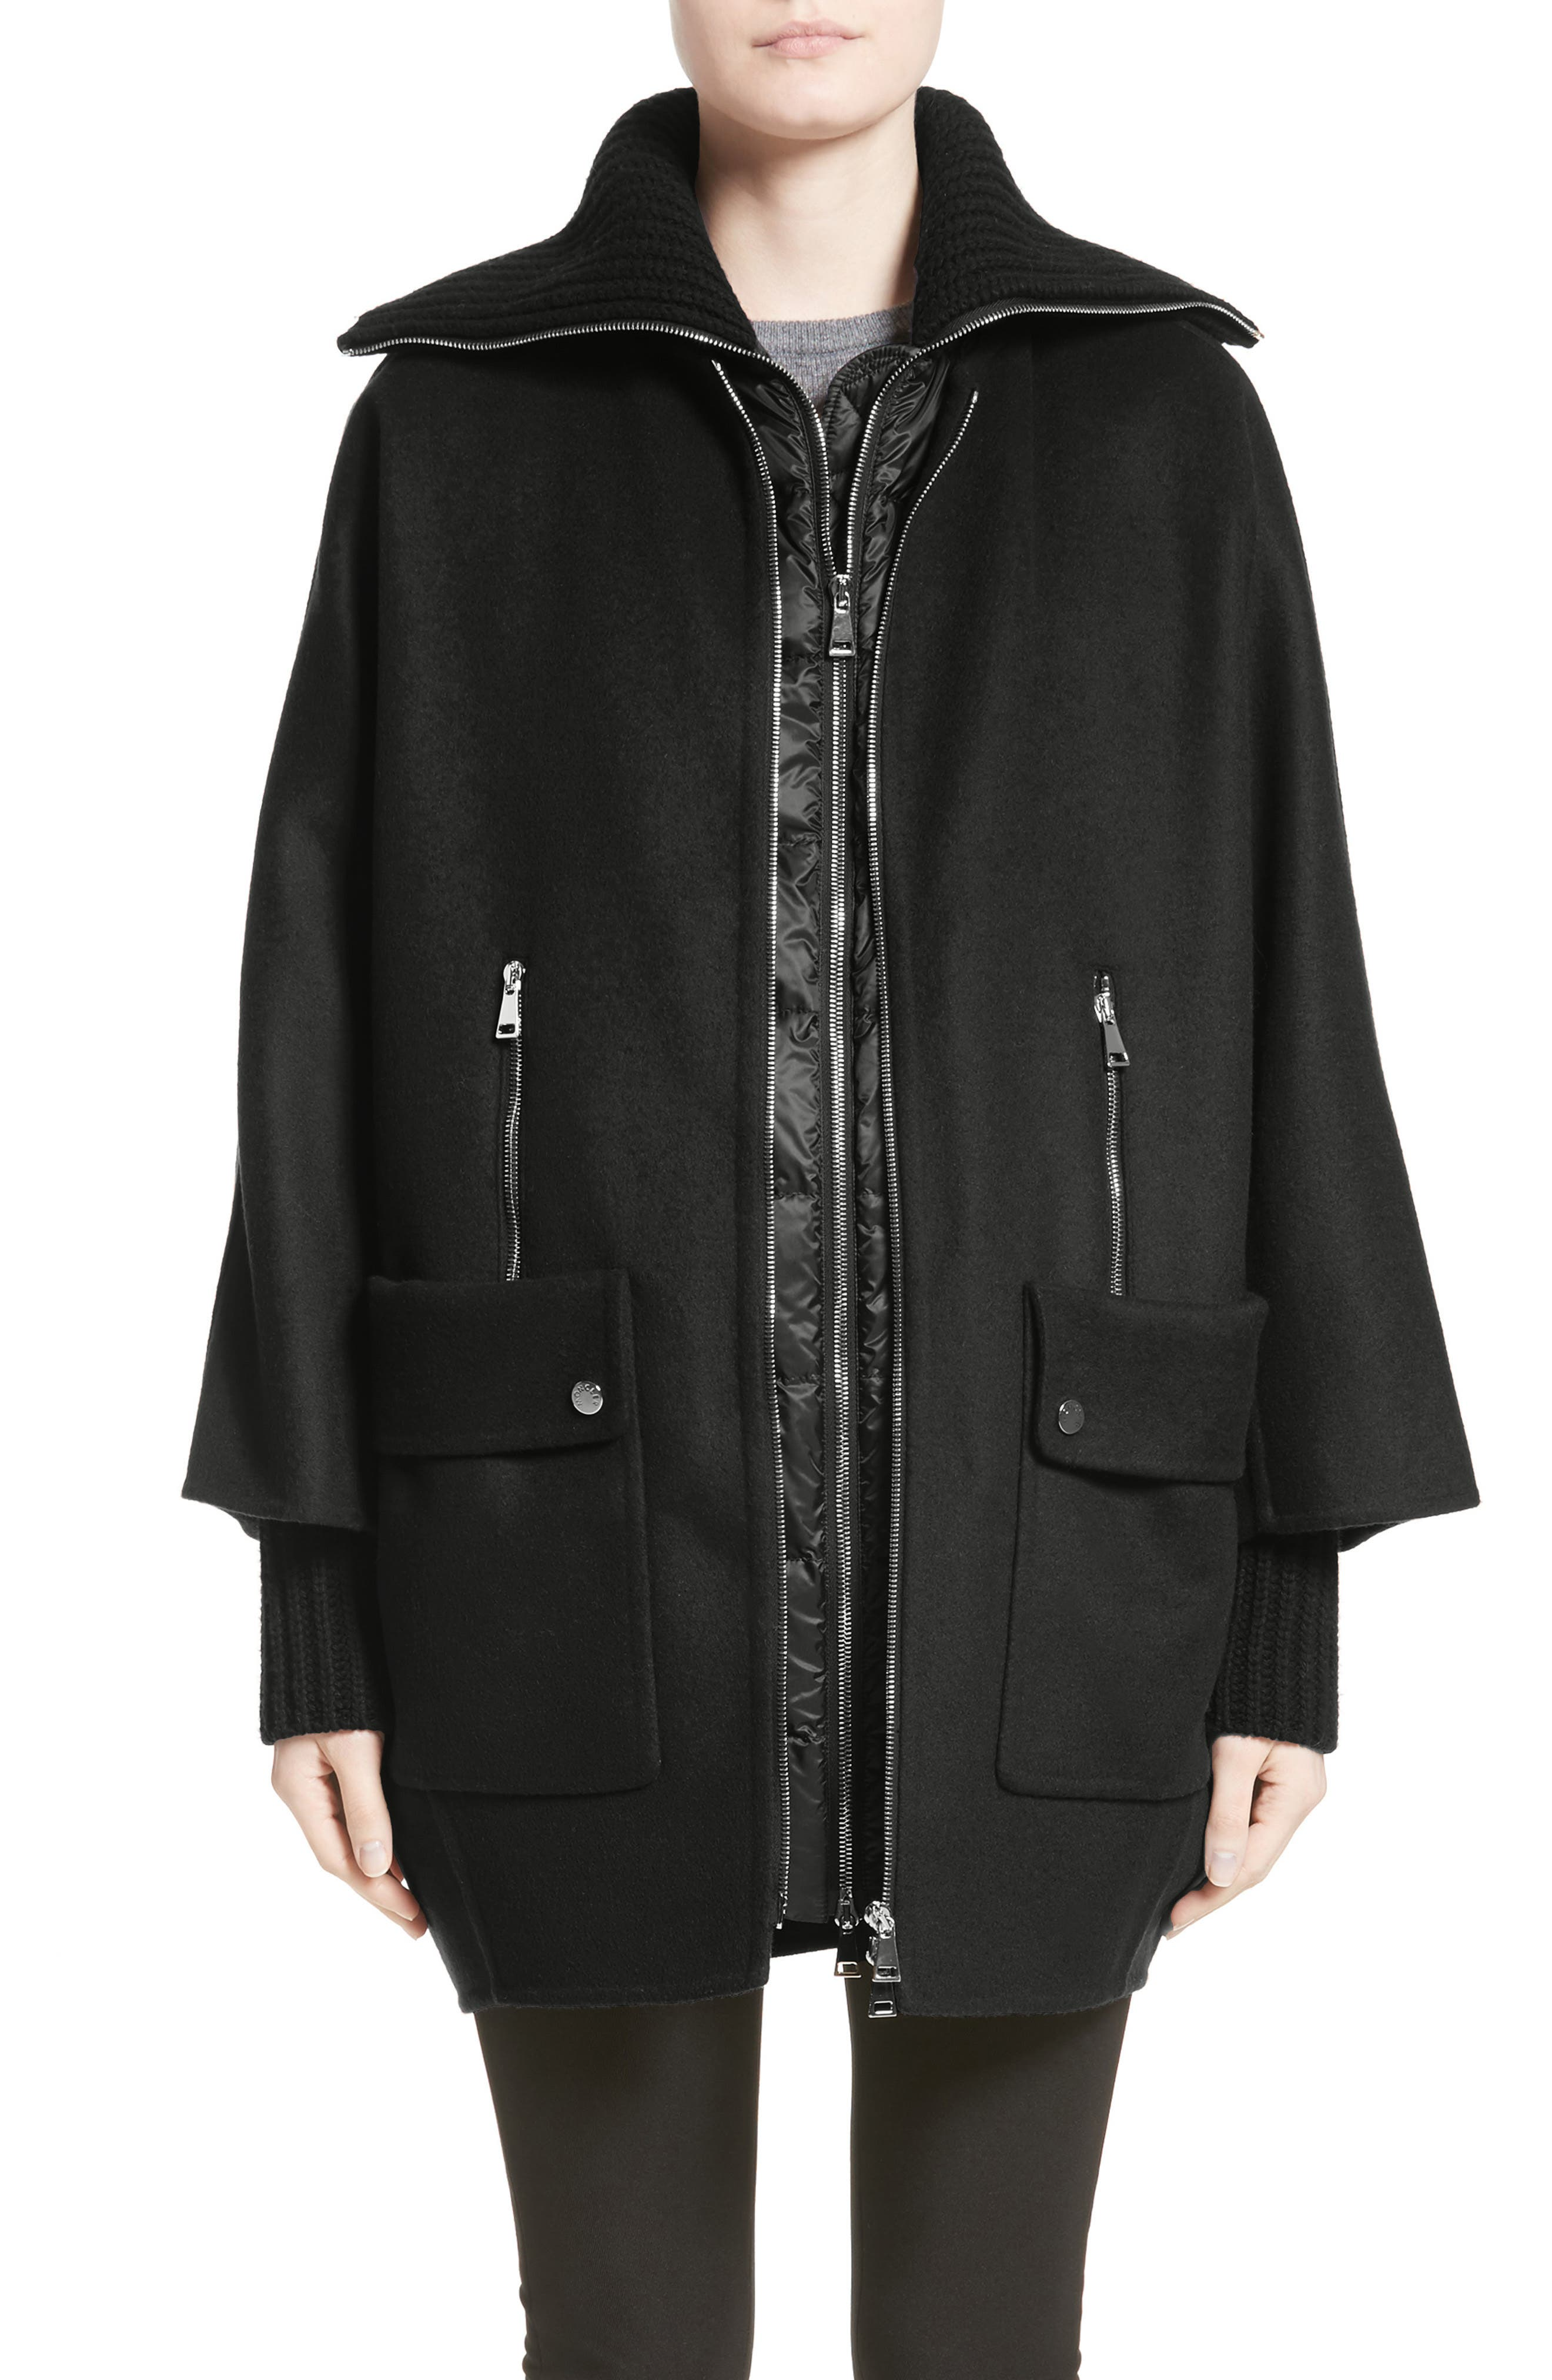 Acanthus Wool & Cashmere Coat with Removable Down Puffer Layer,                             Main thumbnail 1, color,                             BLACK